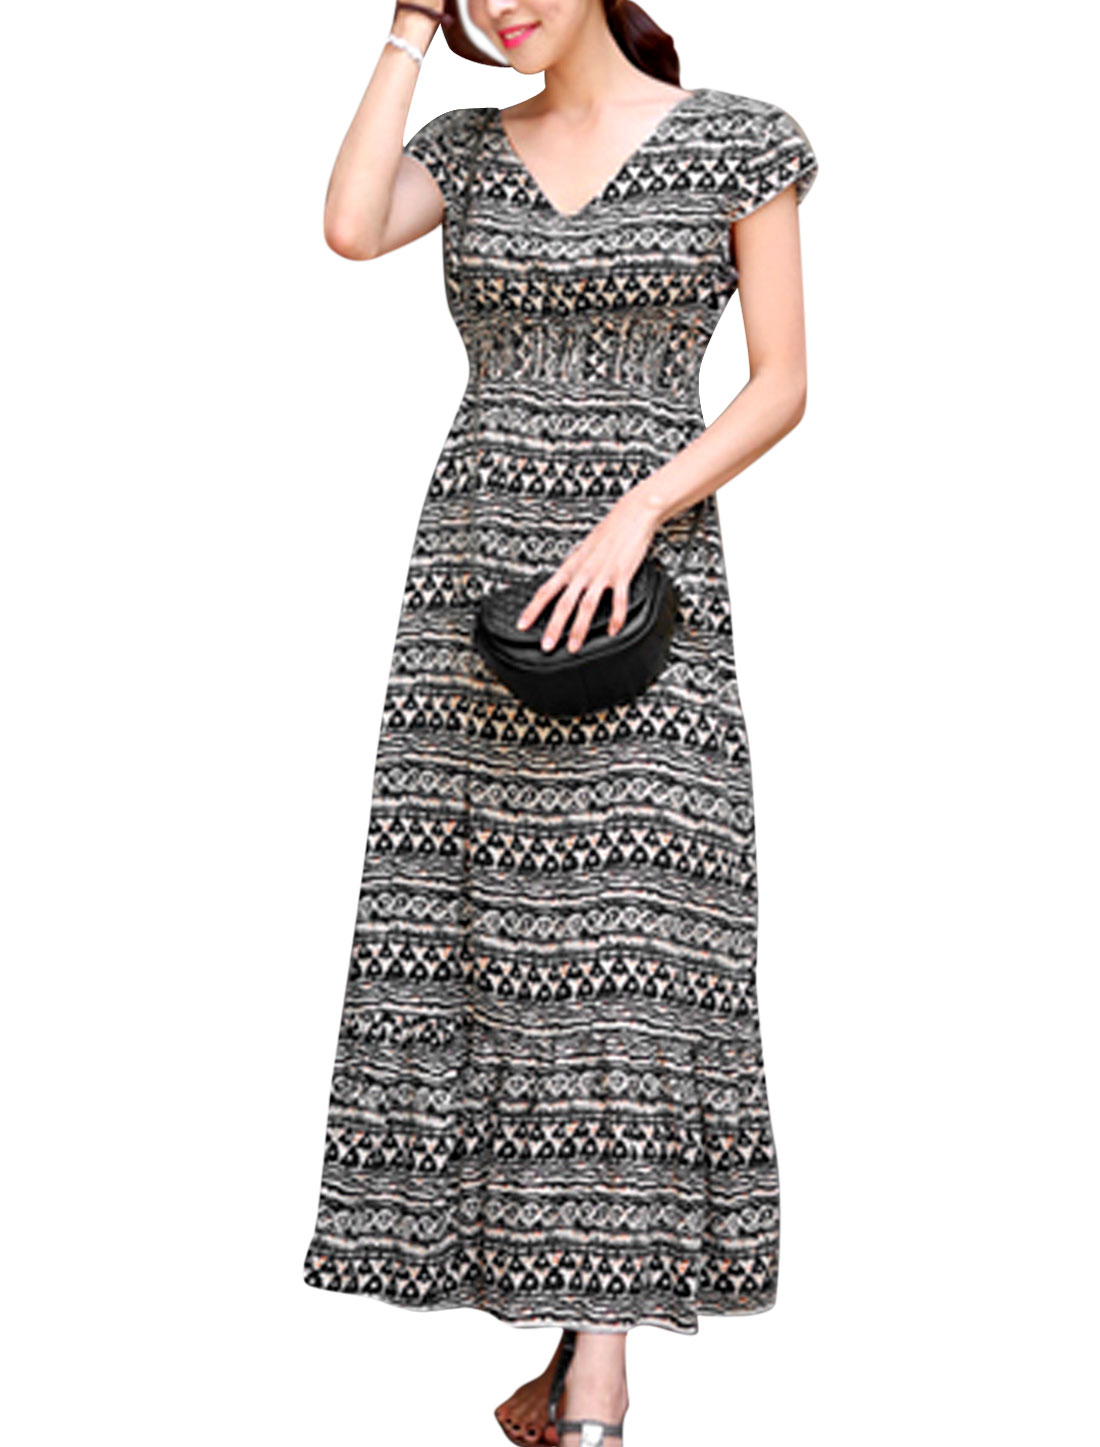 Lady Cap Sleeve Novelty Pattern Casual Dress Black Beige M